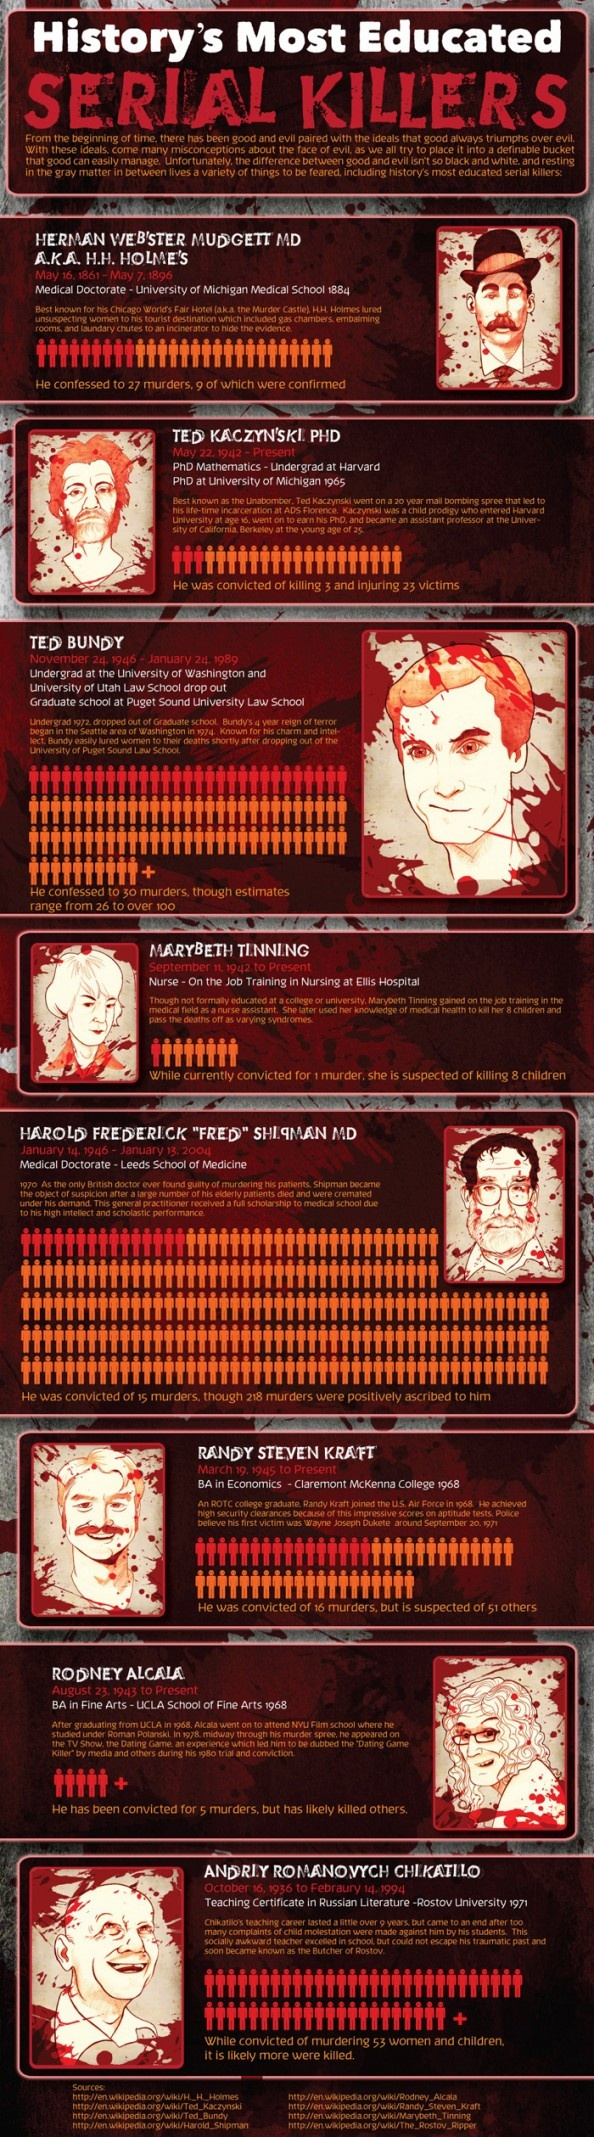 History's Most Educated Serial Killers Infographic